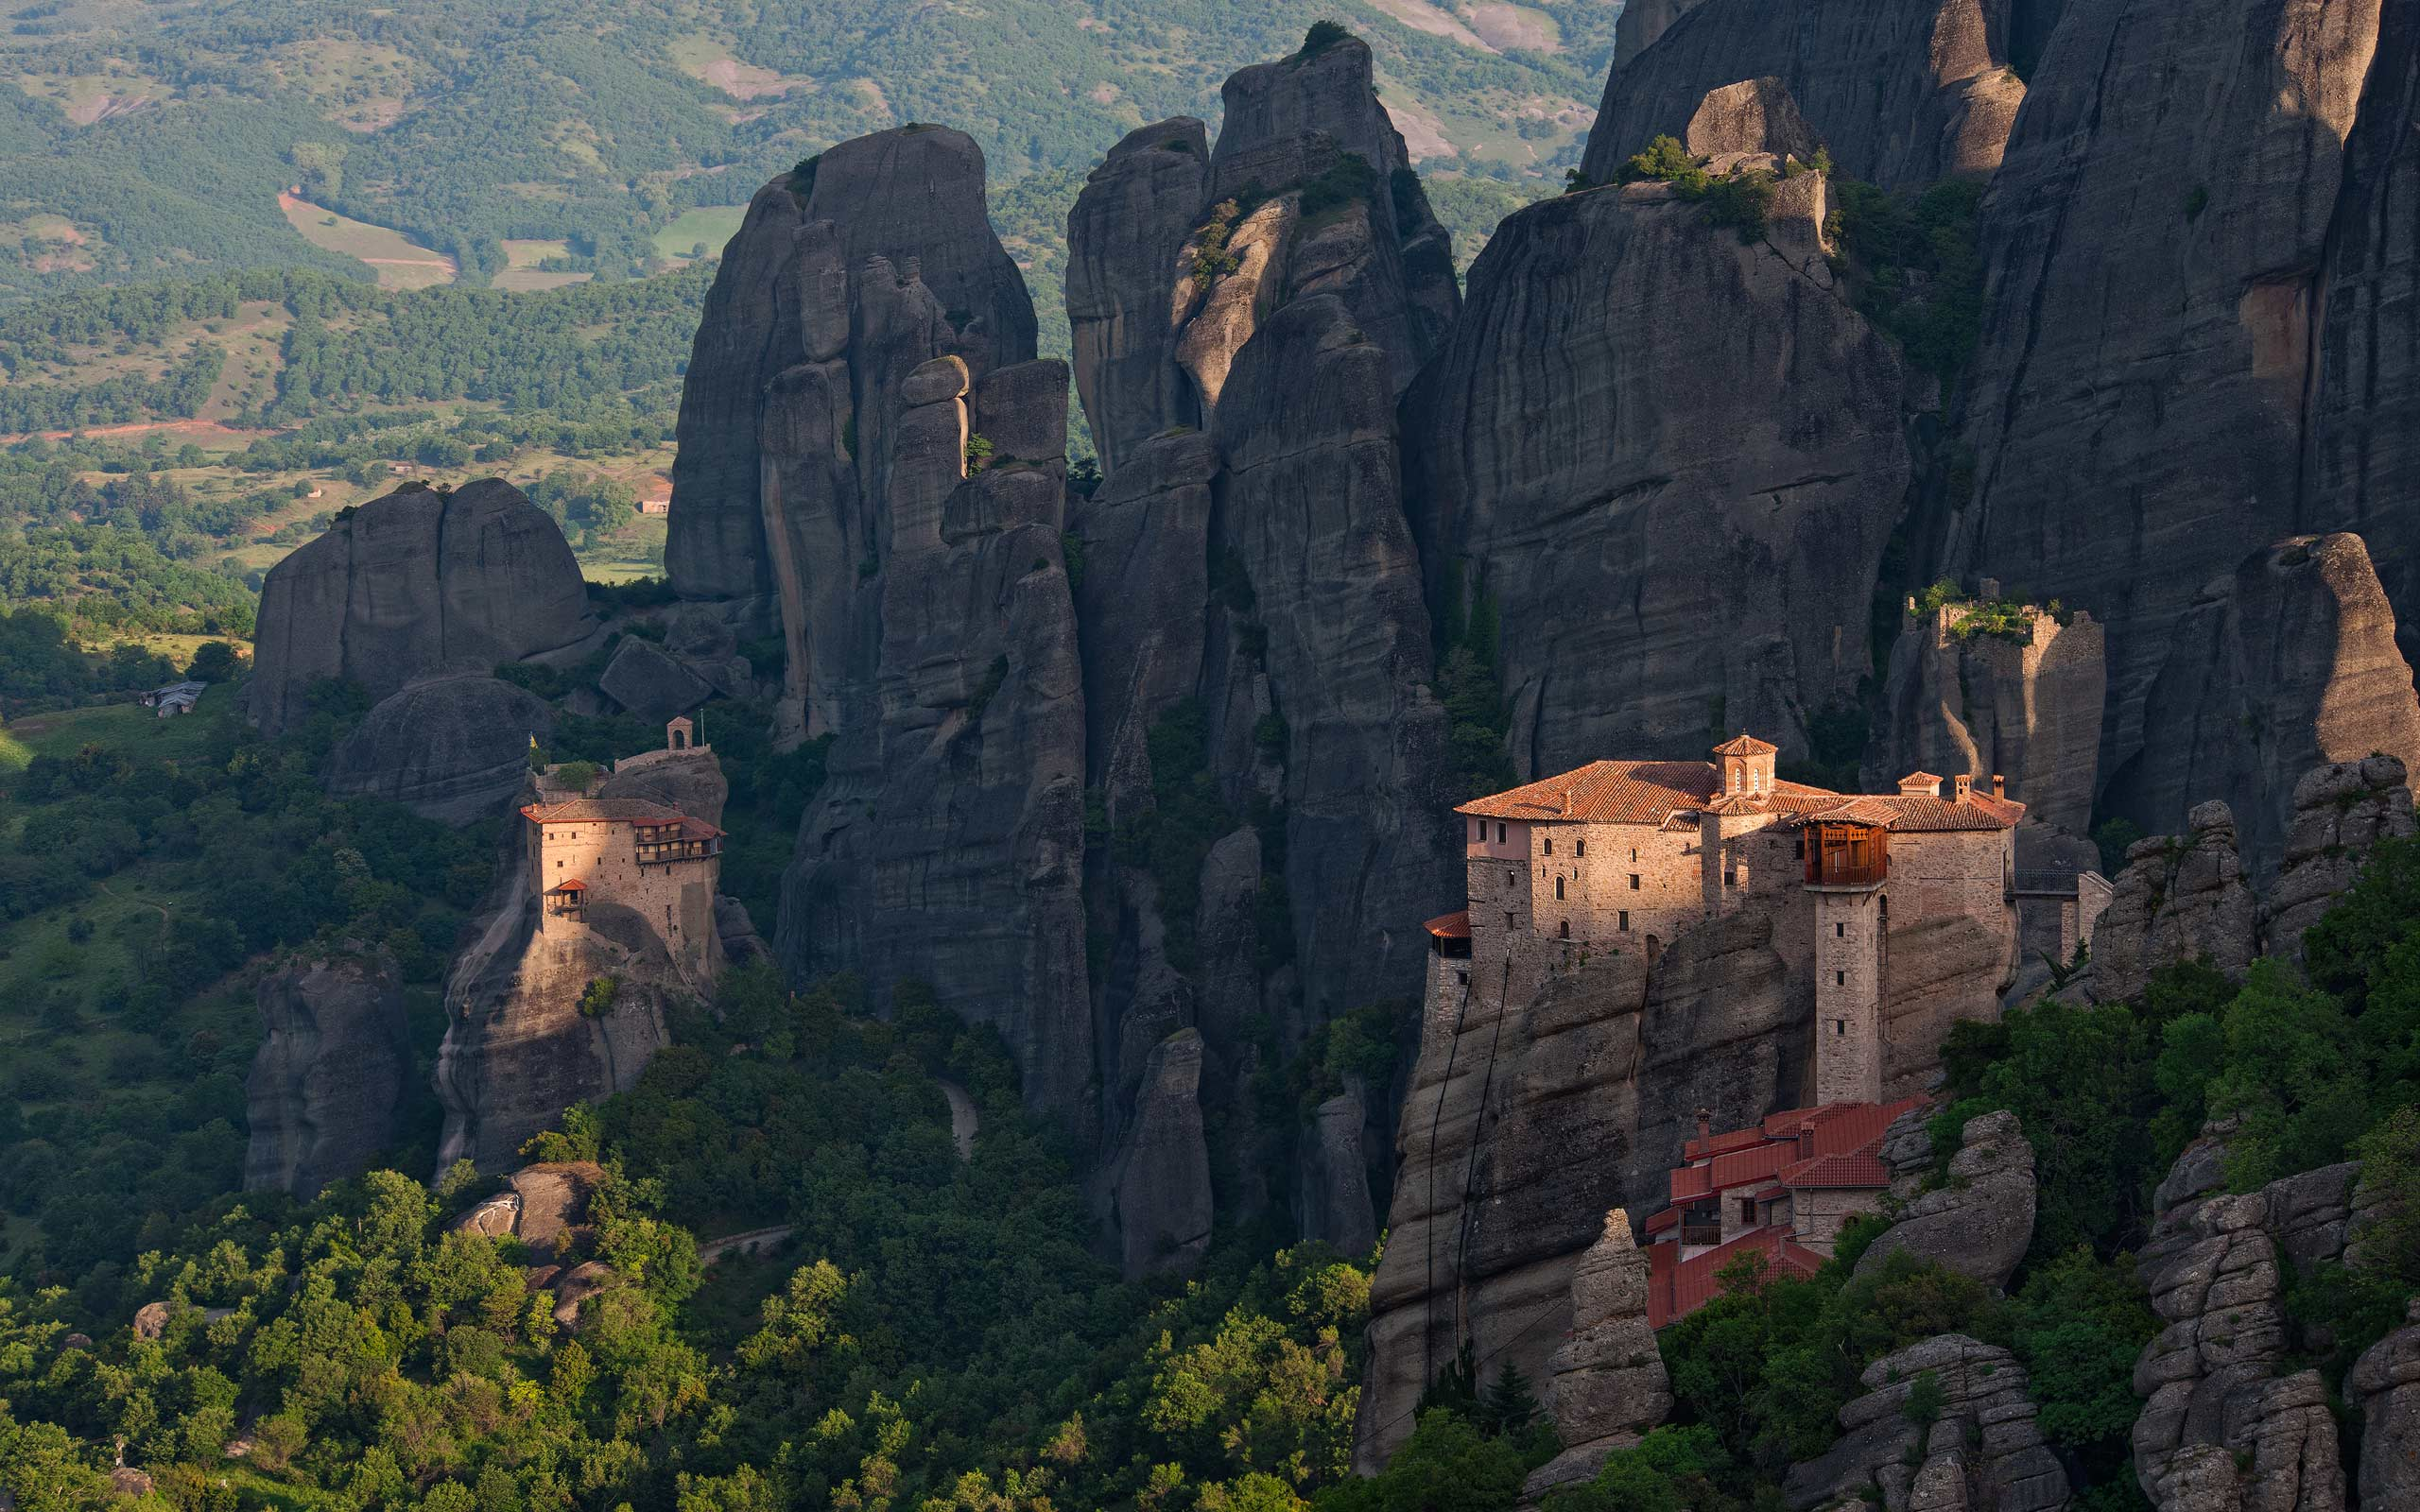 Roussanou Nunnery and St. Nicholas Anapafsas Monasteriy at sunrise. Meteora, Thessaly, Greece - Meteora-Monasteries-Greece - Mike Reyfman Photography